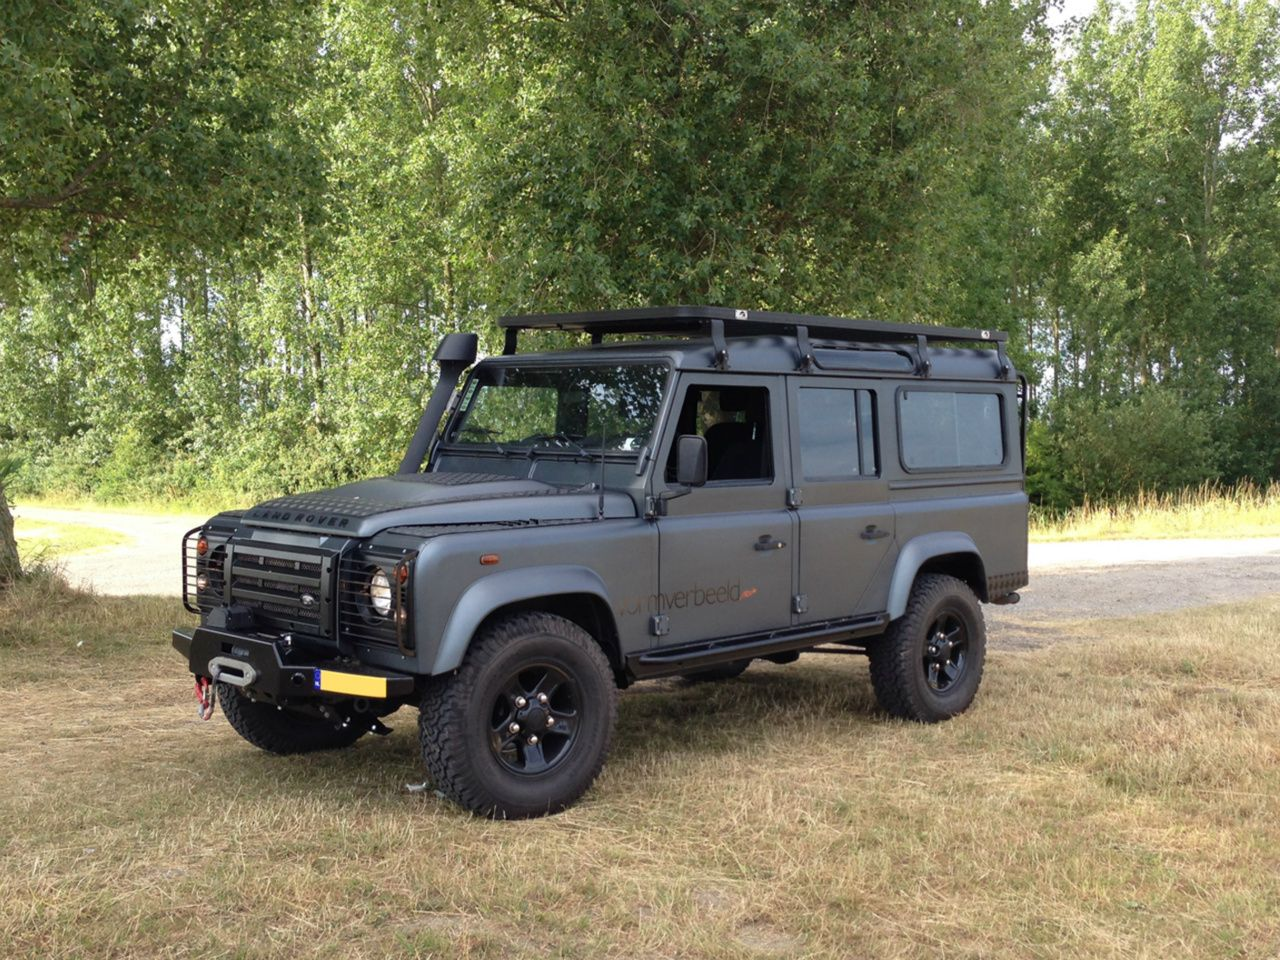 Land rover defender 110 td4 sw se customized twisted extreme adventure in daytone grey matt